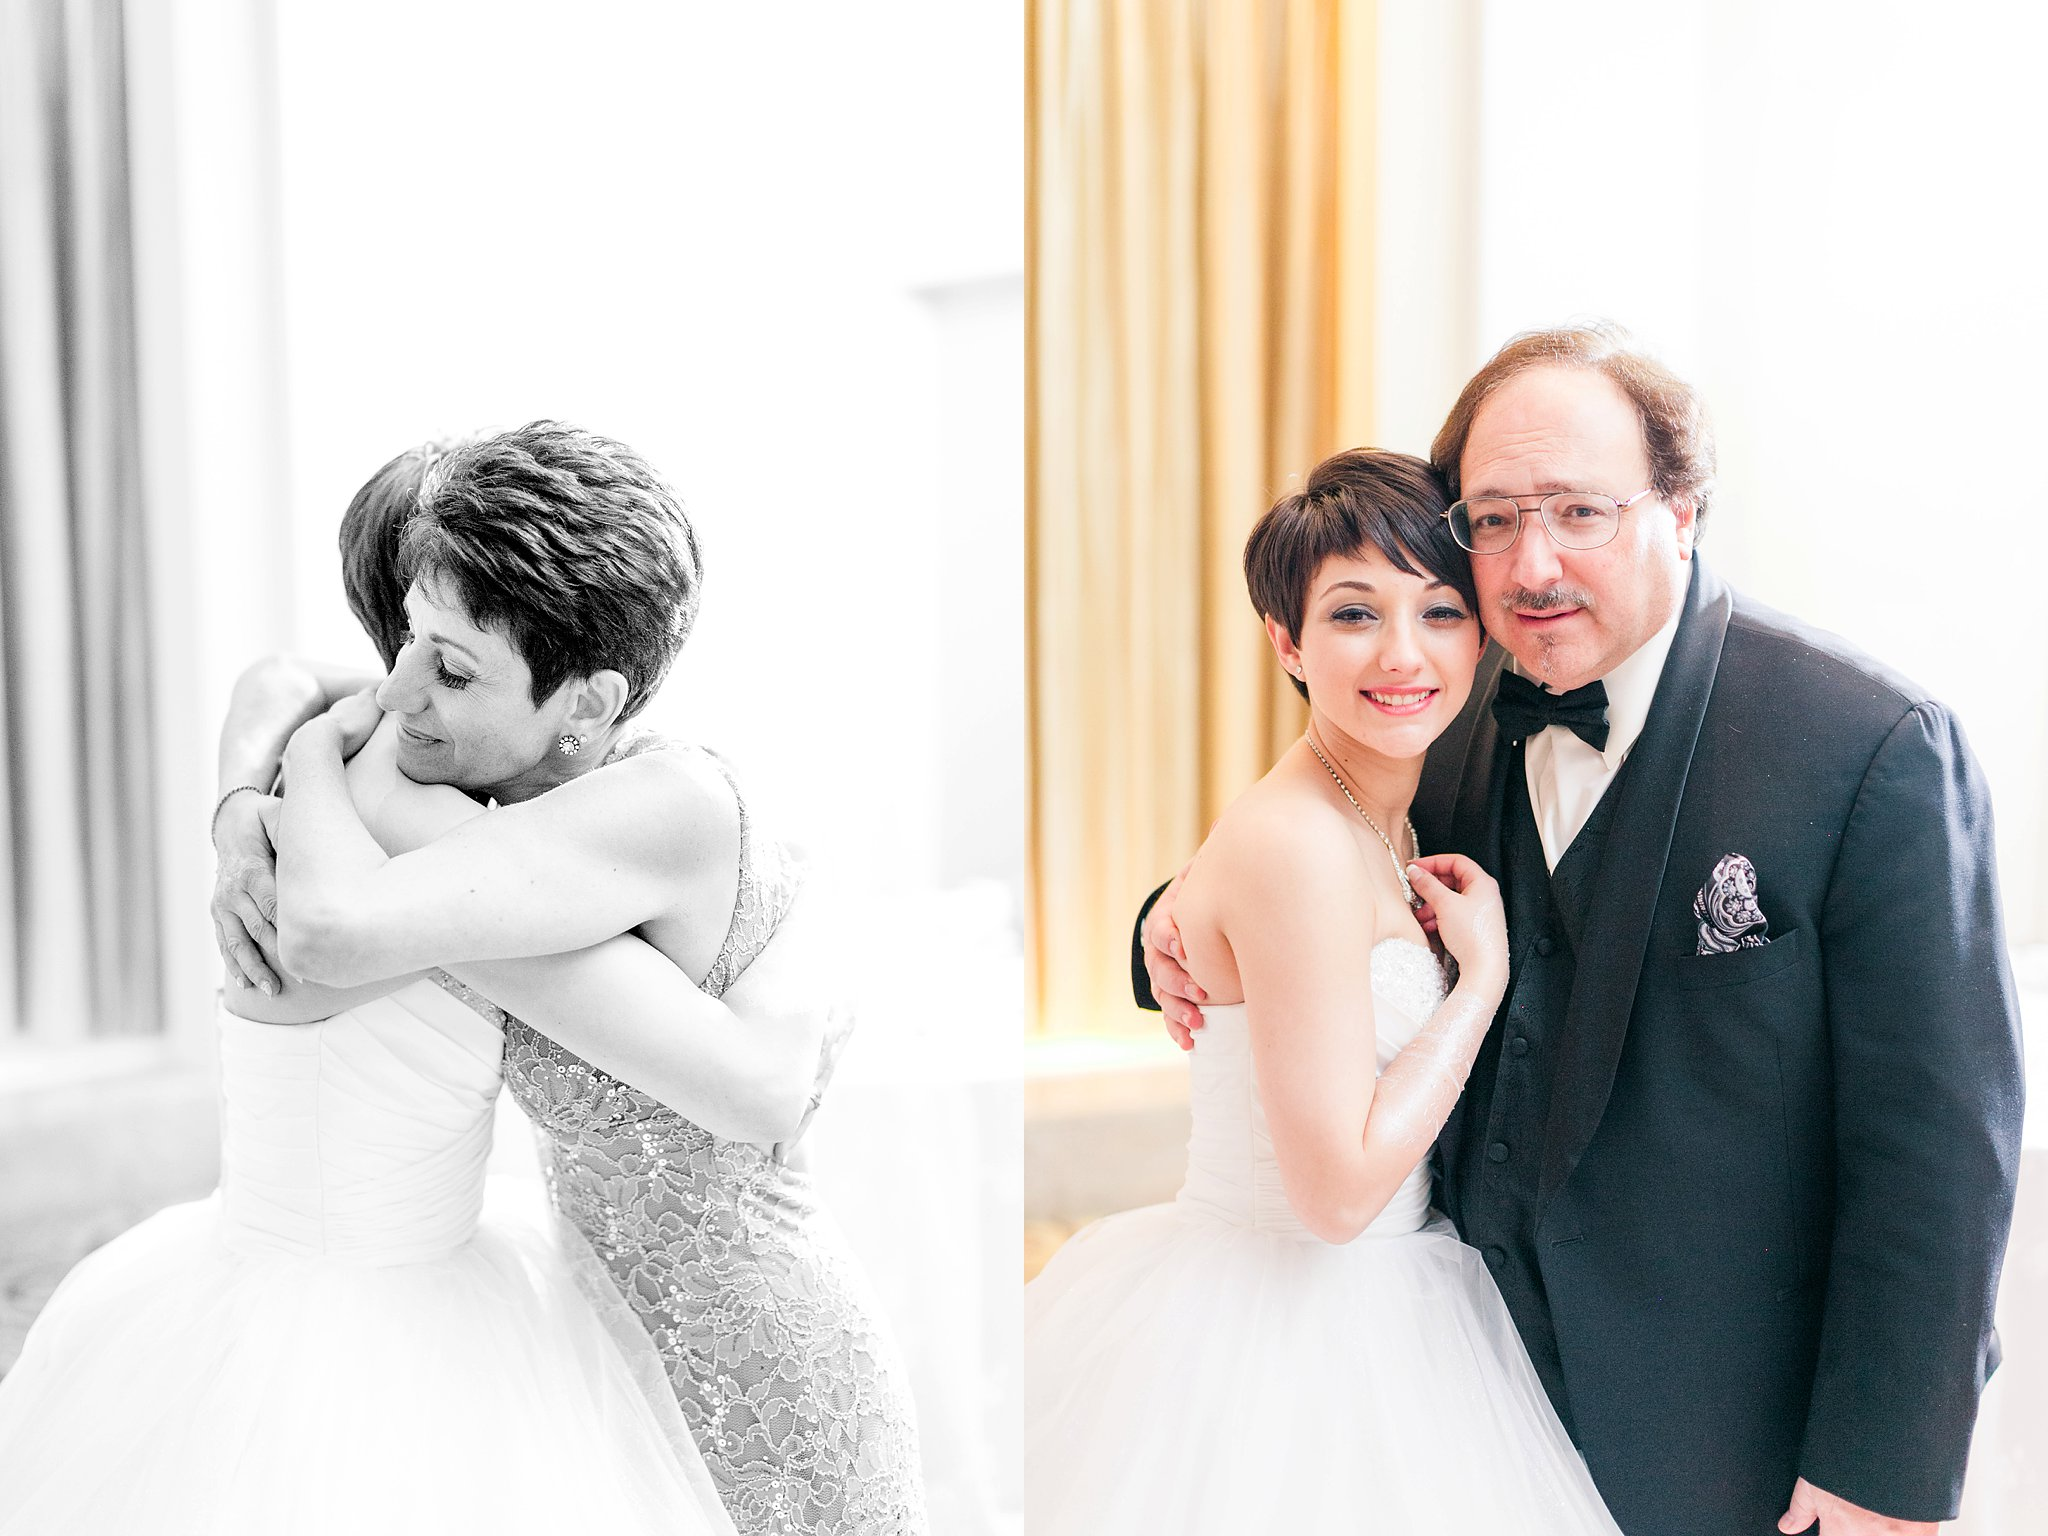 Mayflower Hotel Wedding Photos DC Pink & Gold Winter Wedding Tori & Tyler-591_photo.jpg